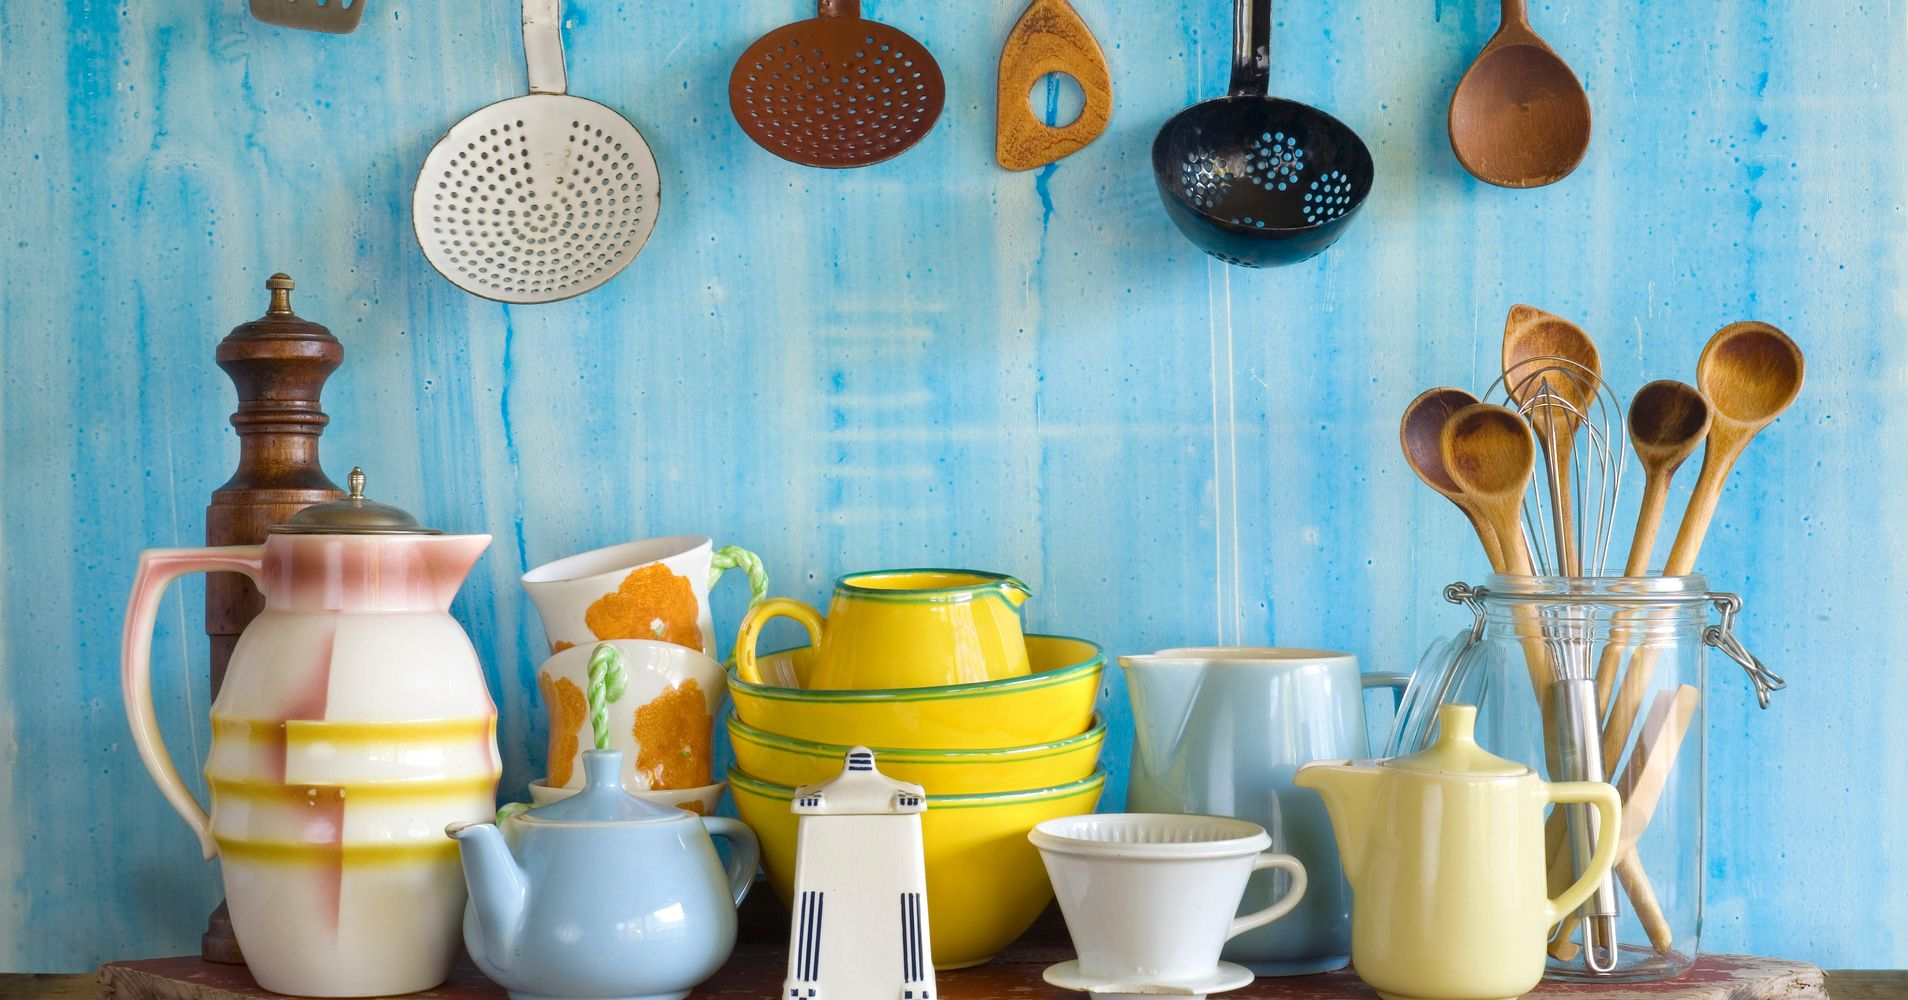 24 Retro Kitchen Essentials Every Vintage Obsessive Needs | HuffPost